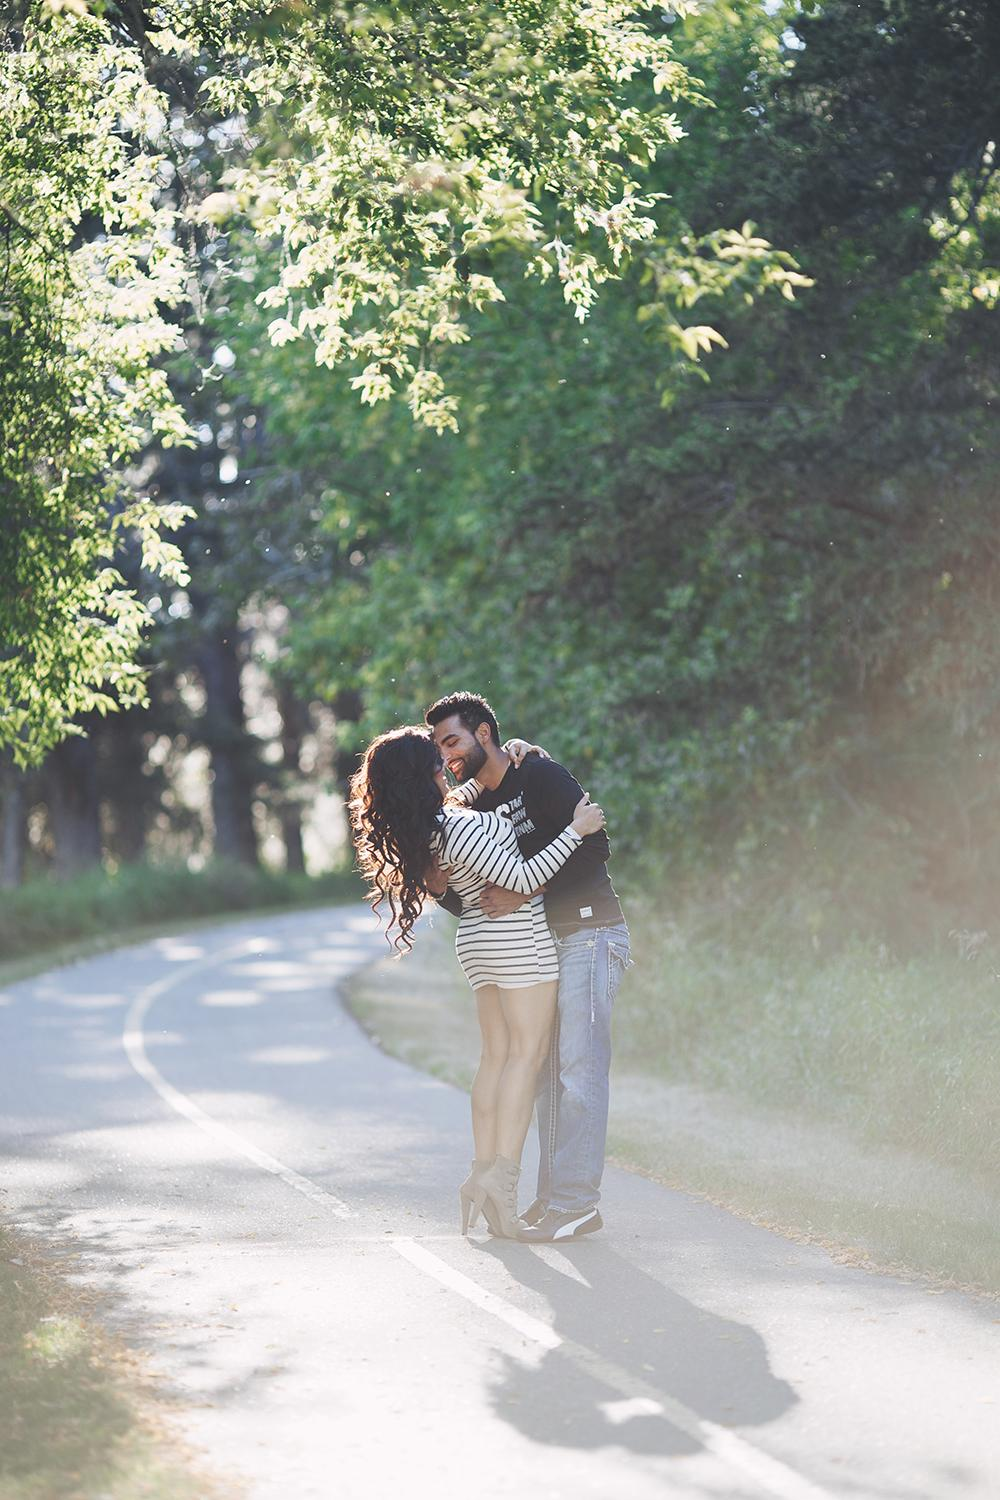 Andras Schram, Pre Wedding Photoshoot, Wedding Photoshoot, Natasha Virmani